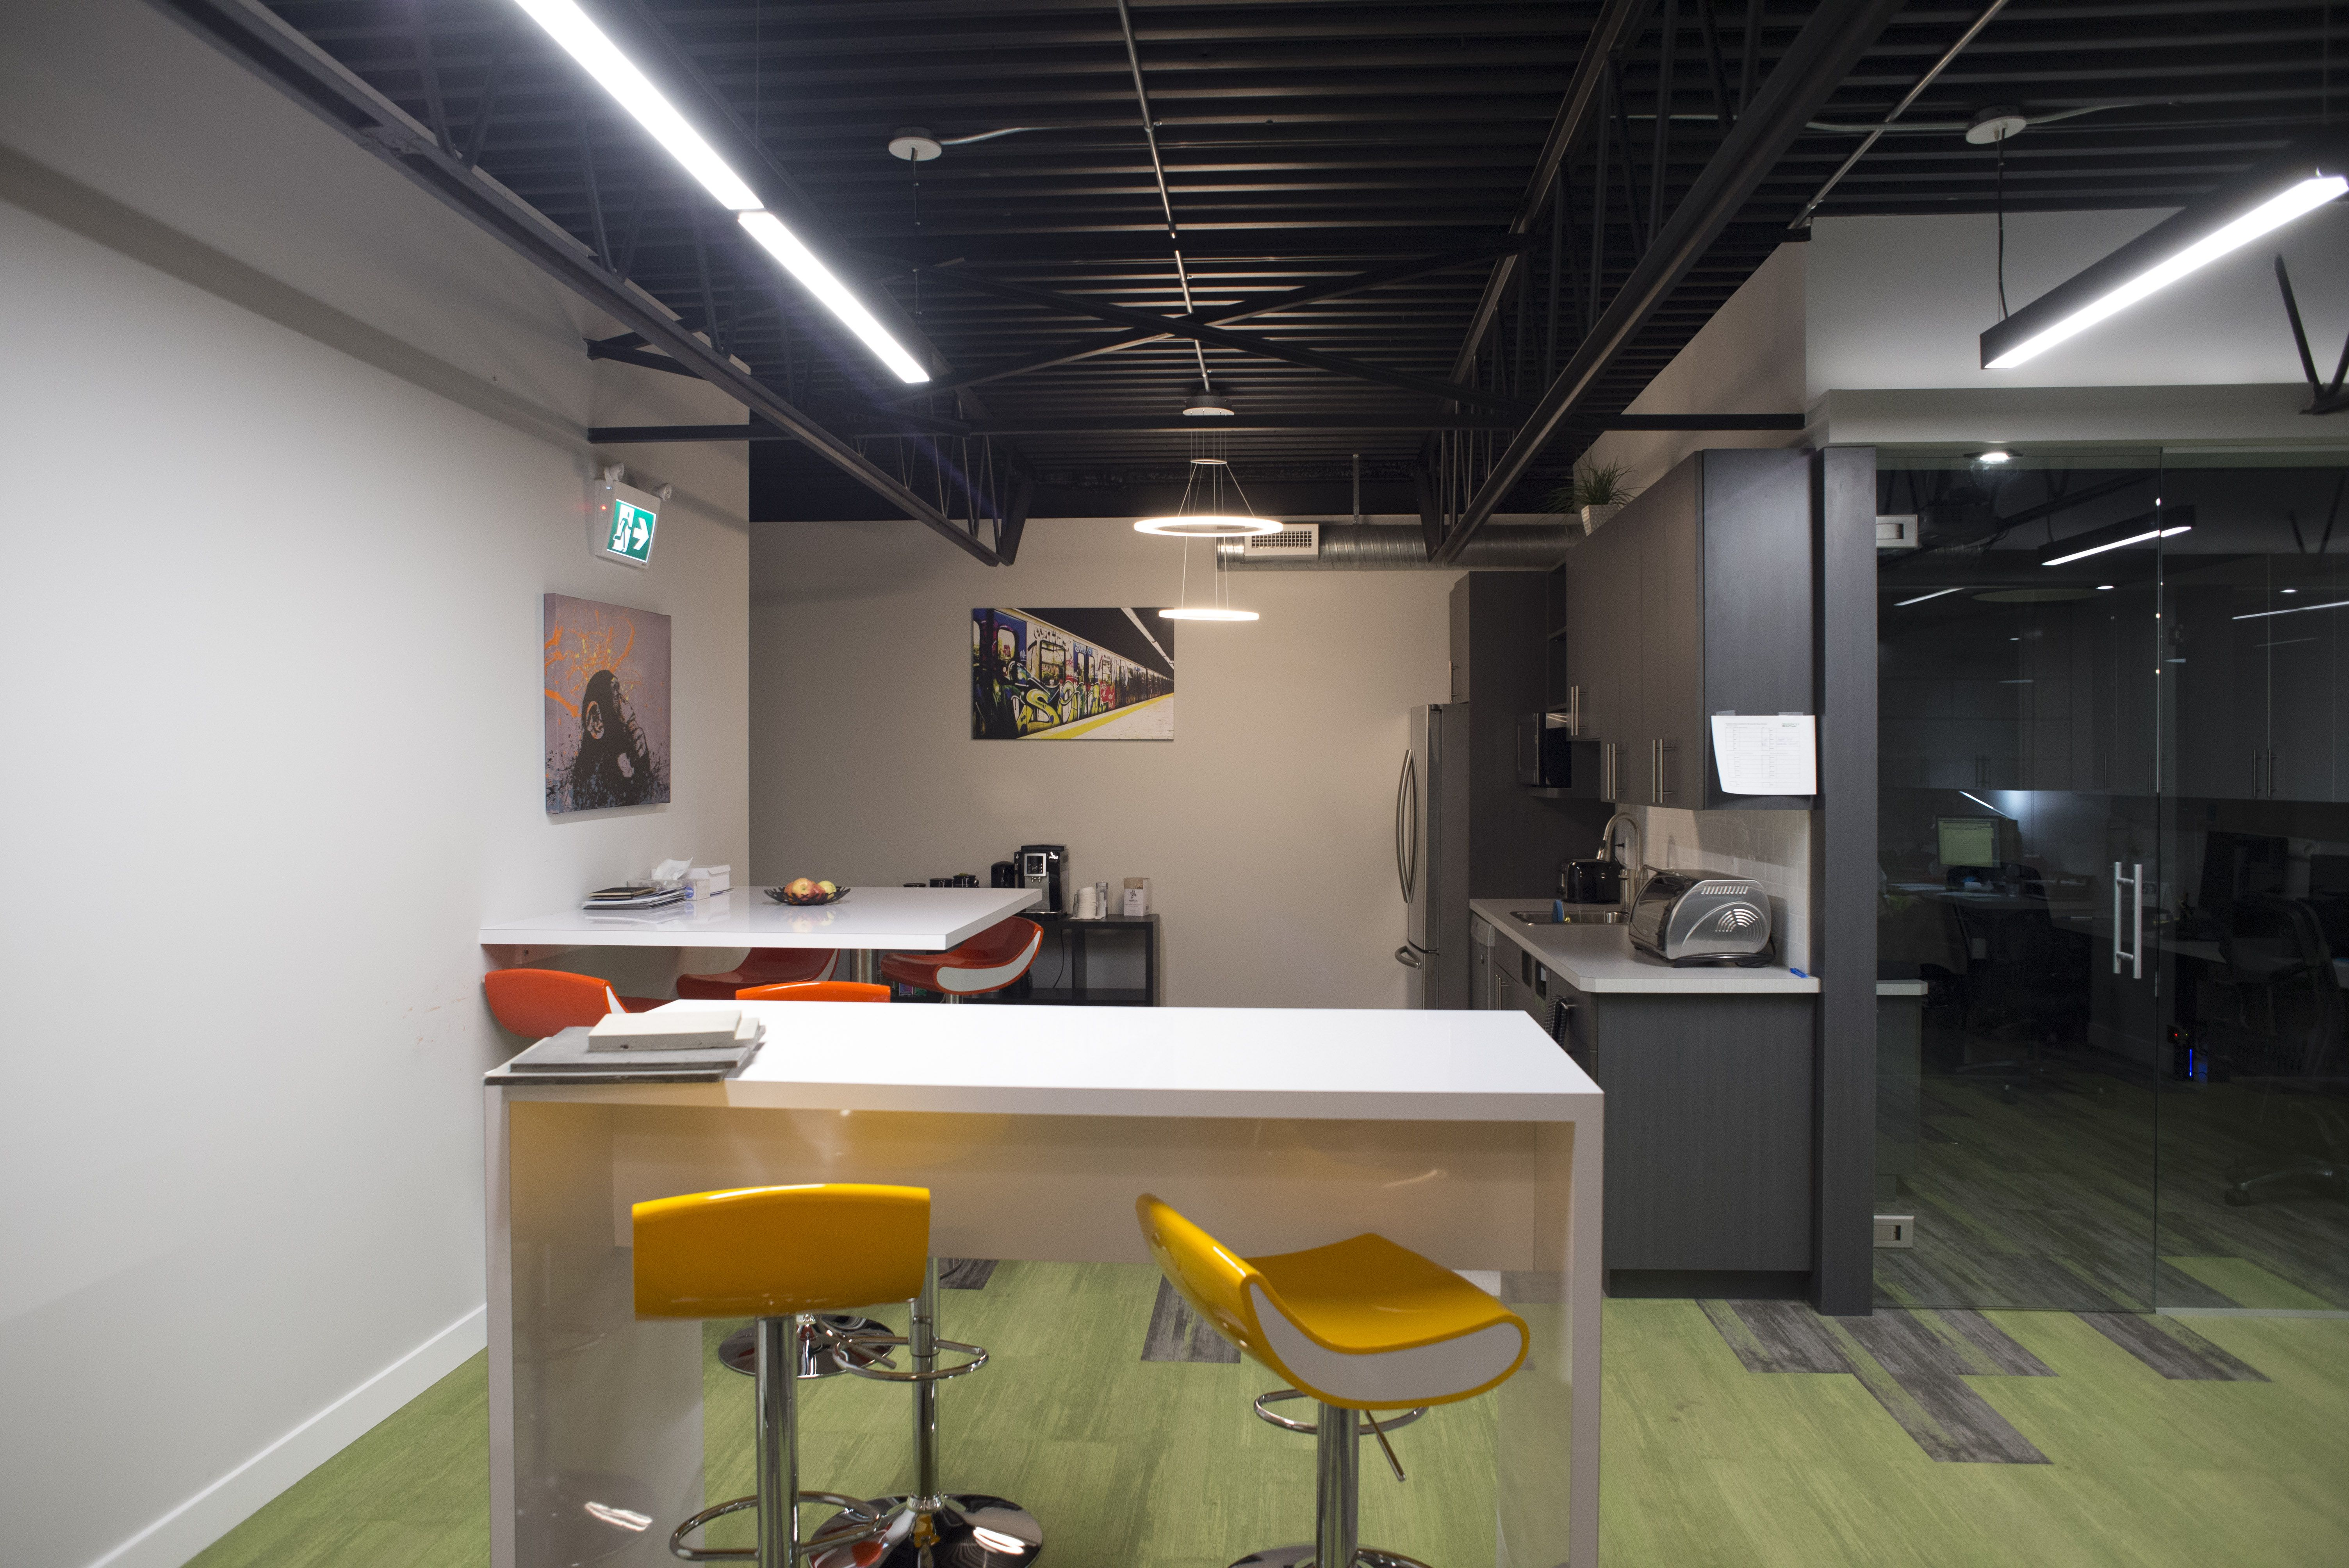 Edmonton Office Design Lounge In 2020 Office Design Design Interior